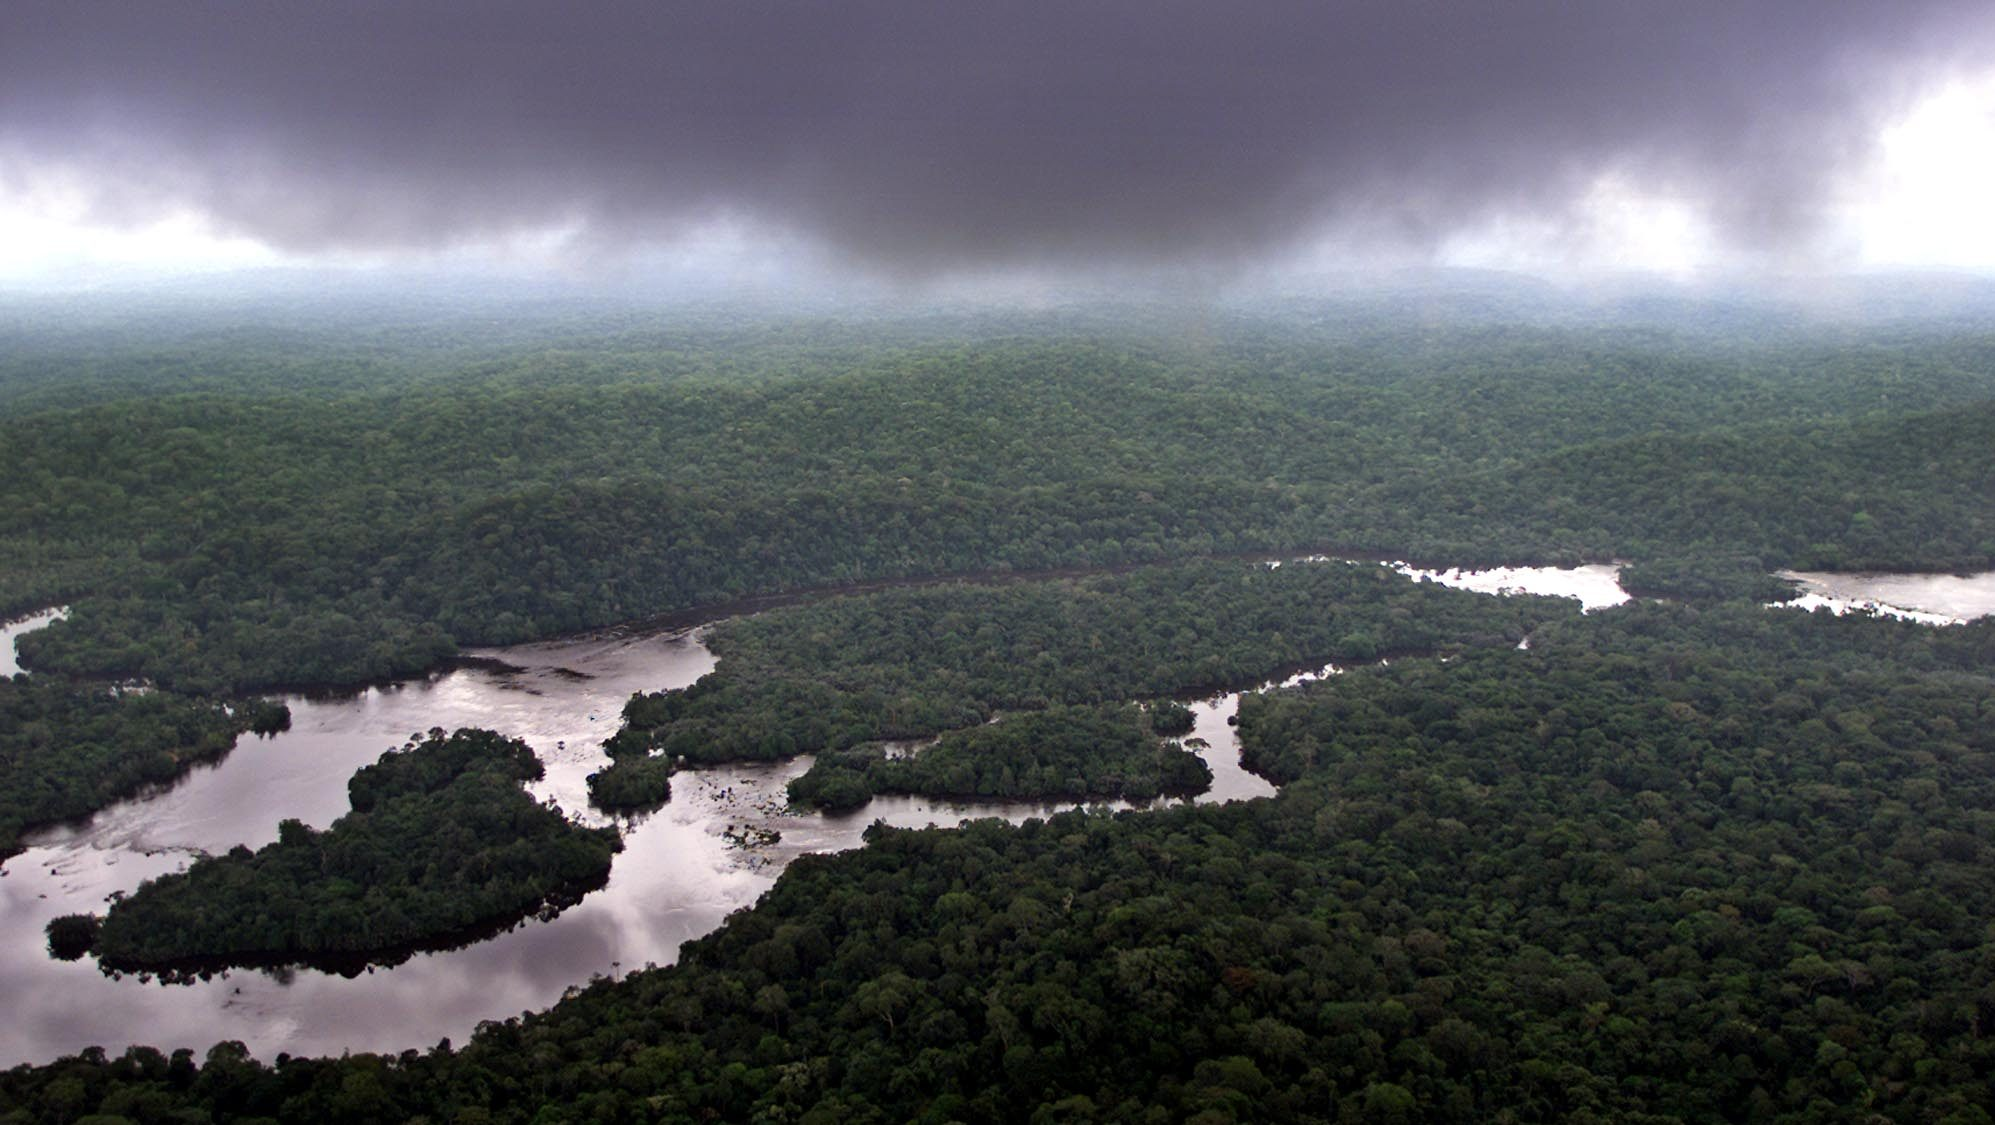 Gabon to get $150 million from Norway to protect its forests